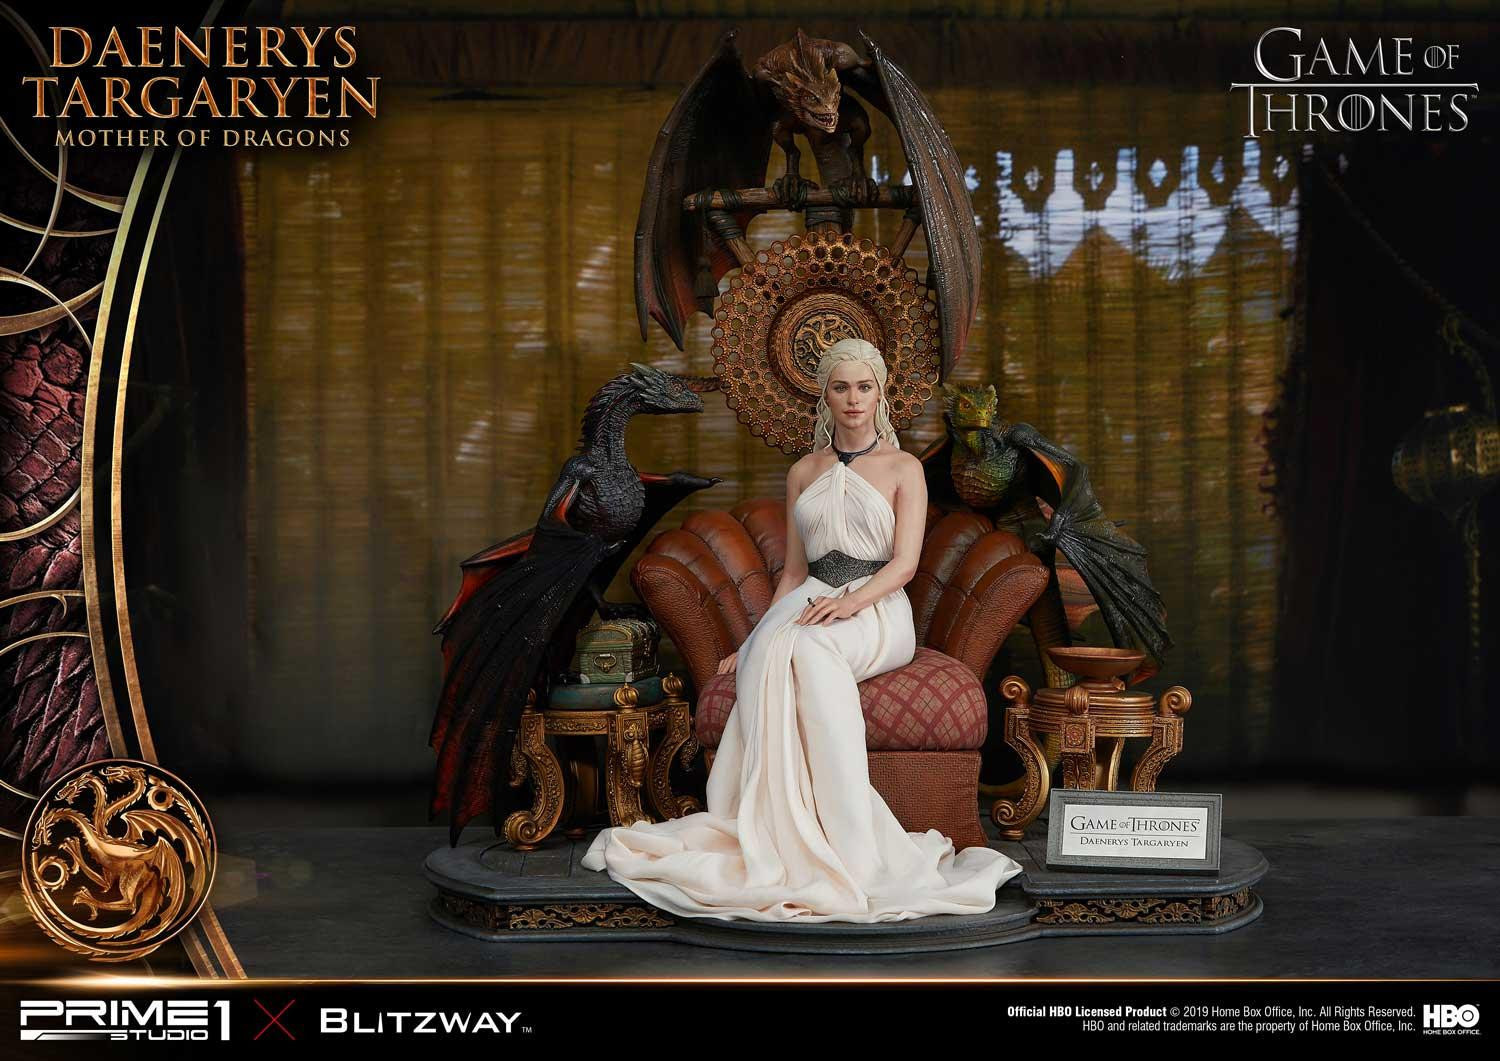 Daenerys Targaryen is the Mother of Dragons in the New Team-Up Statue